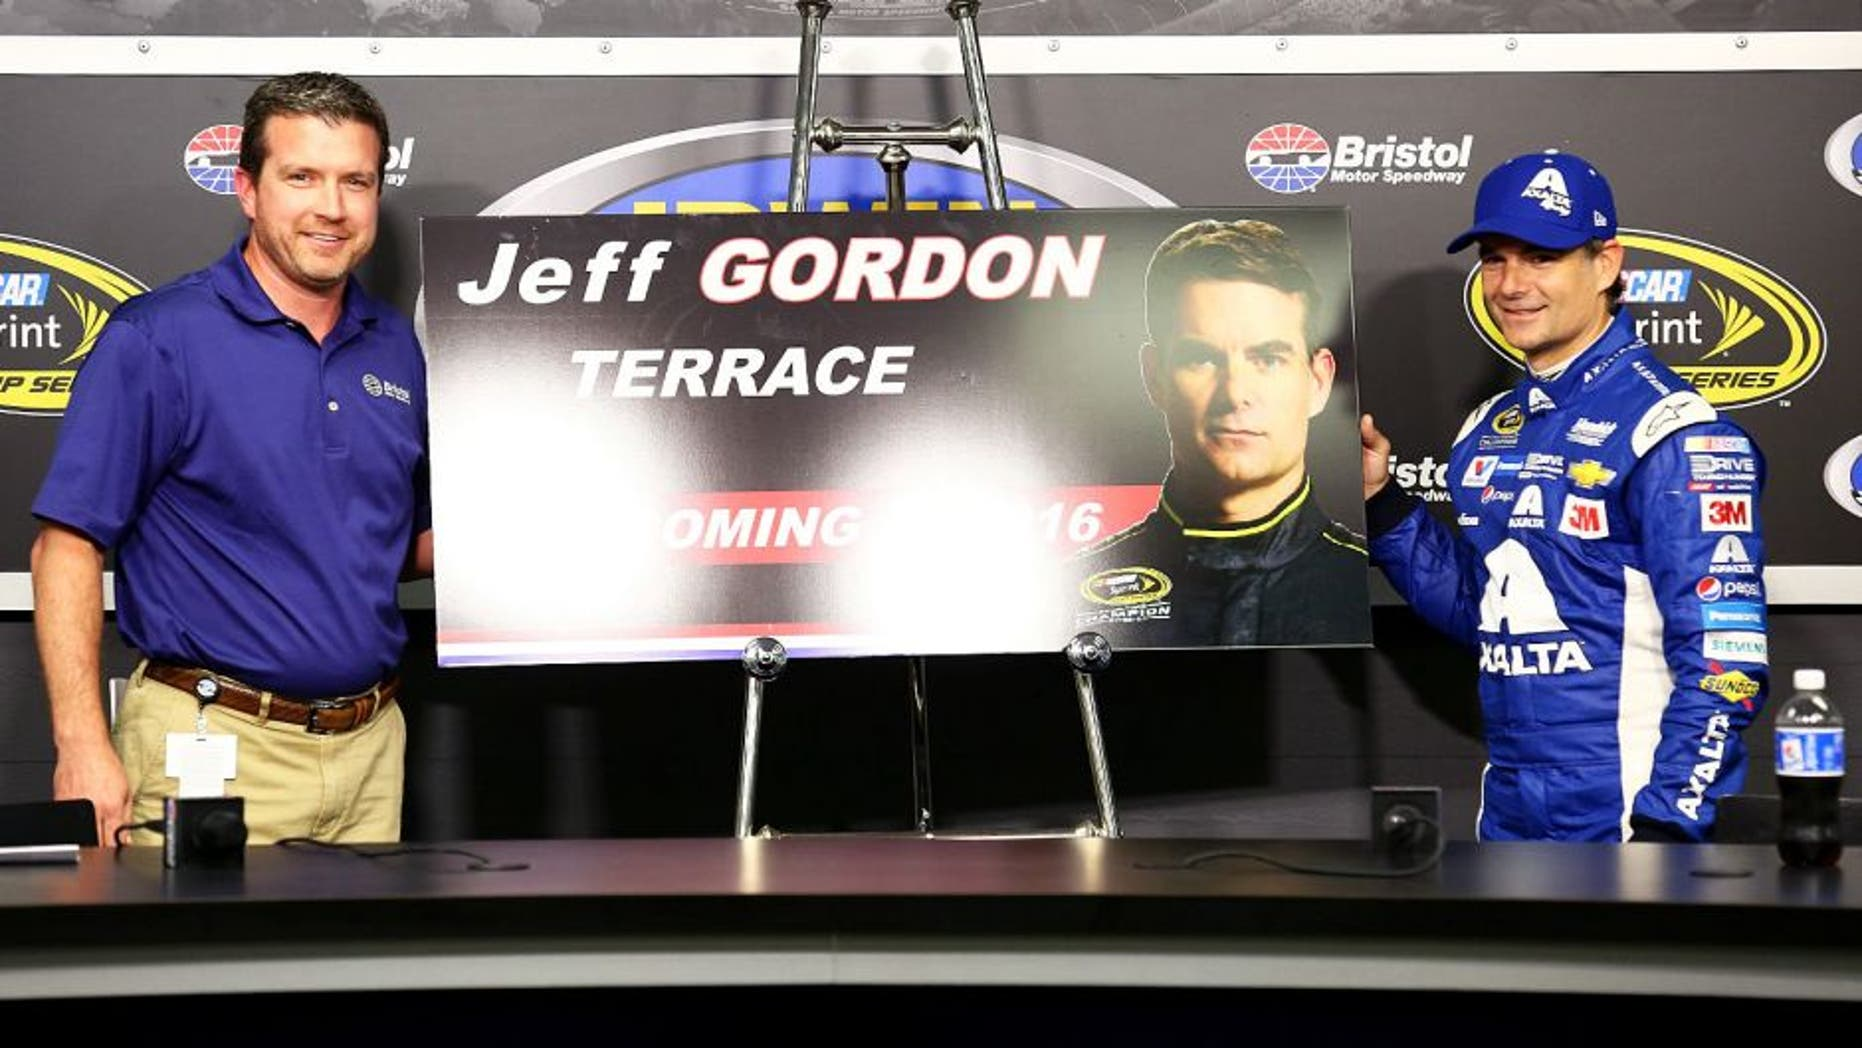 """BRISTOL, TN - AUGUST 21: Jerry Caldwell, General Manager Bristol Motorspeedway, presents Jeff Gordon, driver of the #24 Axalta Chevrolet, with a commemorative section of the grandstand named """"Jeff Gordan Terrace"""" during a press conference after practice for the NASCAR Sprint Cup Series Irwin Tools Night Race at Bristol Motor Speedway on August 21, 2015 in Bristol, Tennessee. (Photo by Daniel Shirey/Getty Images)"""